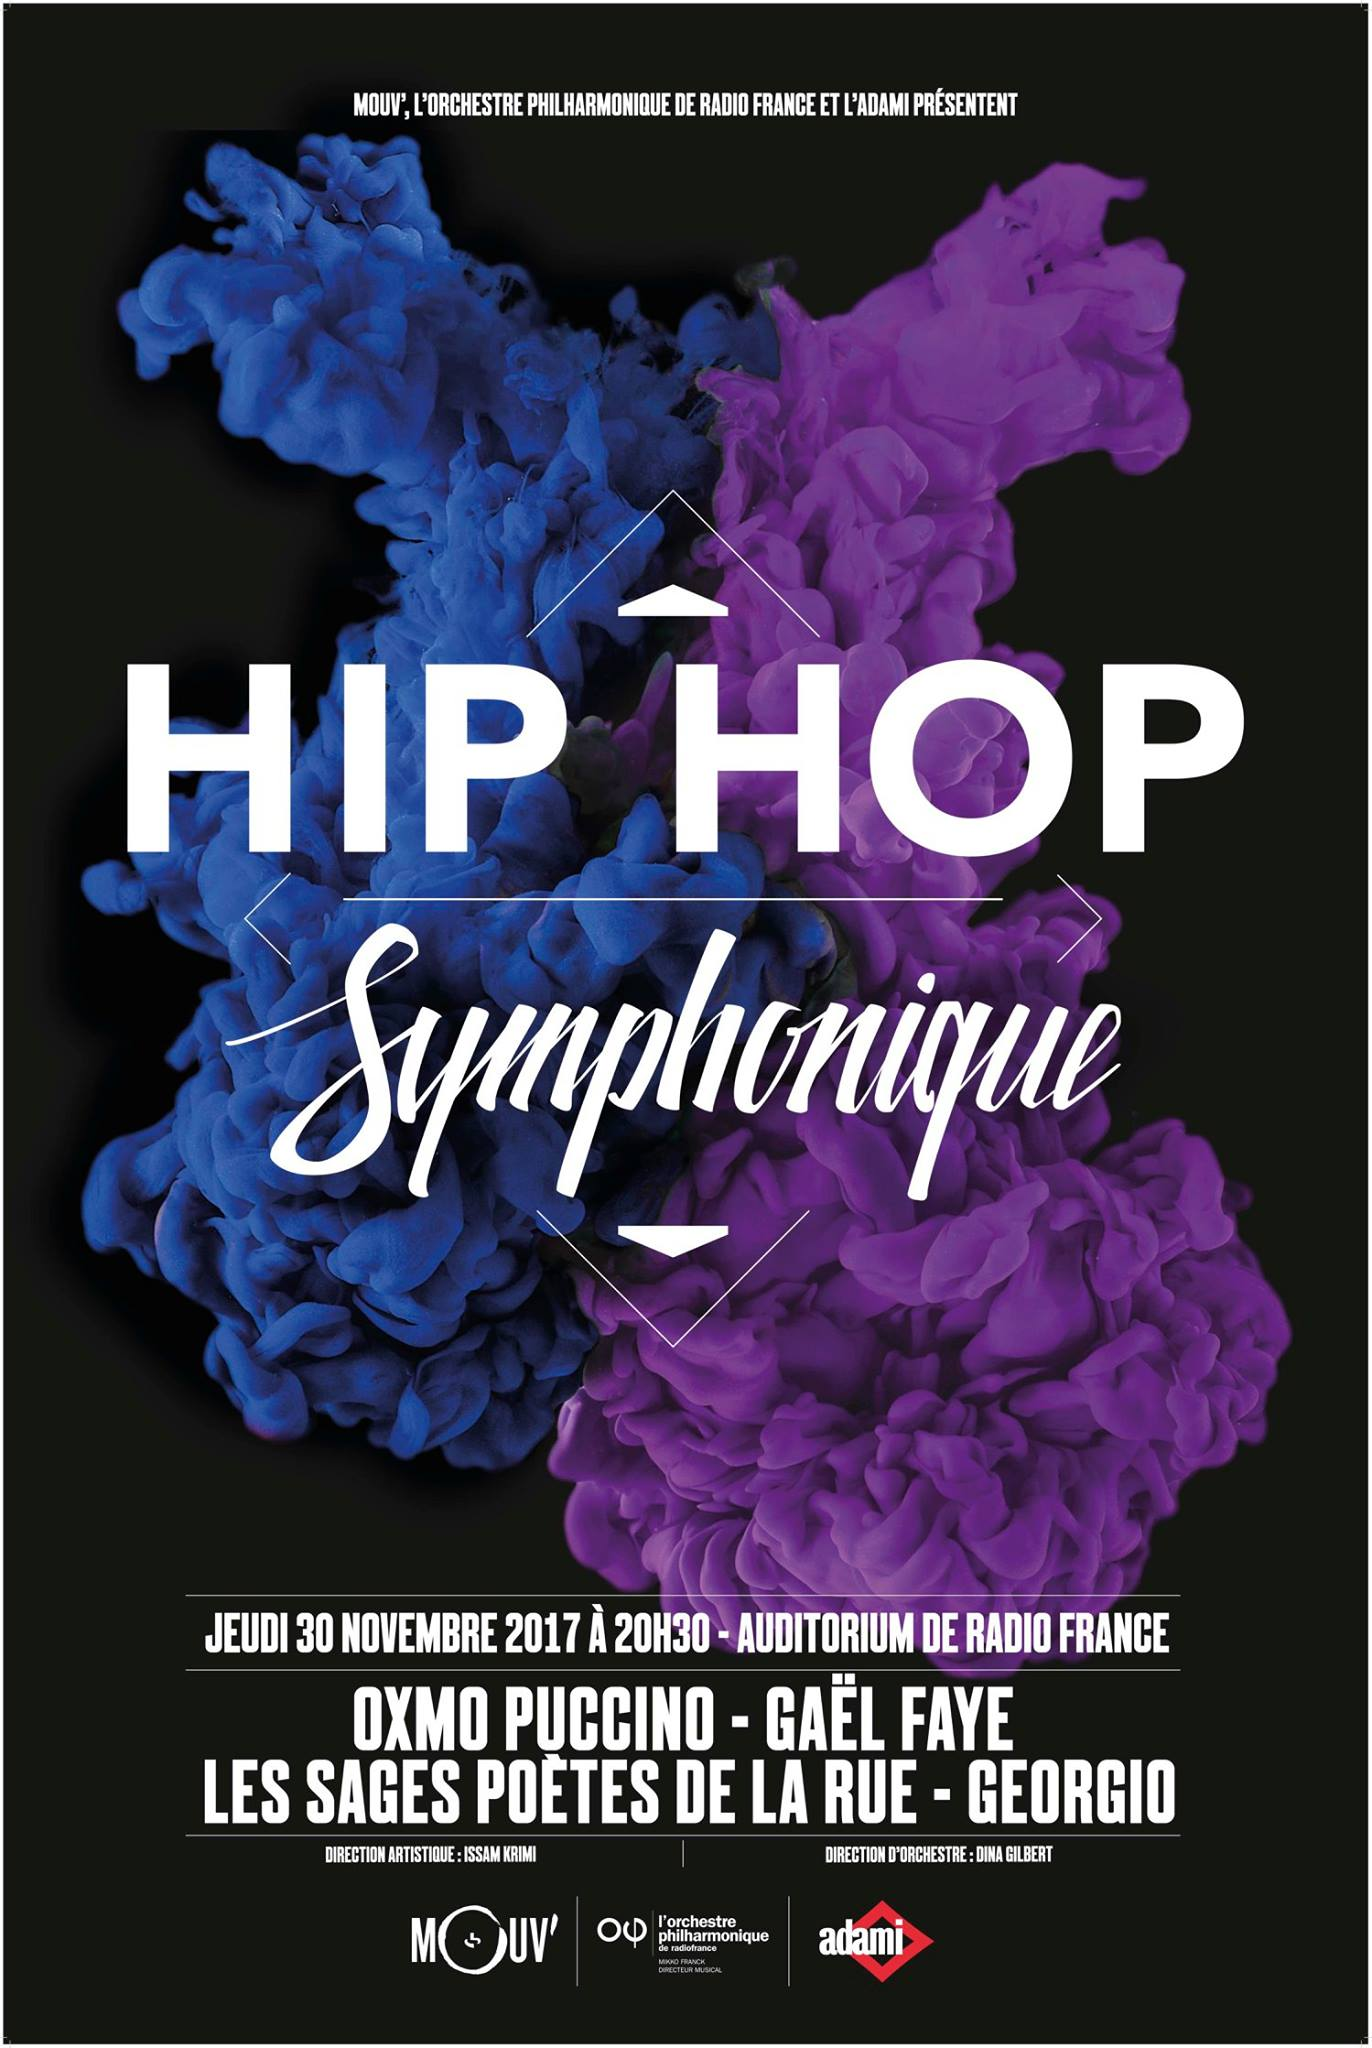 Mouv' : seconde édition de Hip Hop Symphonique